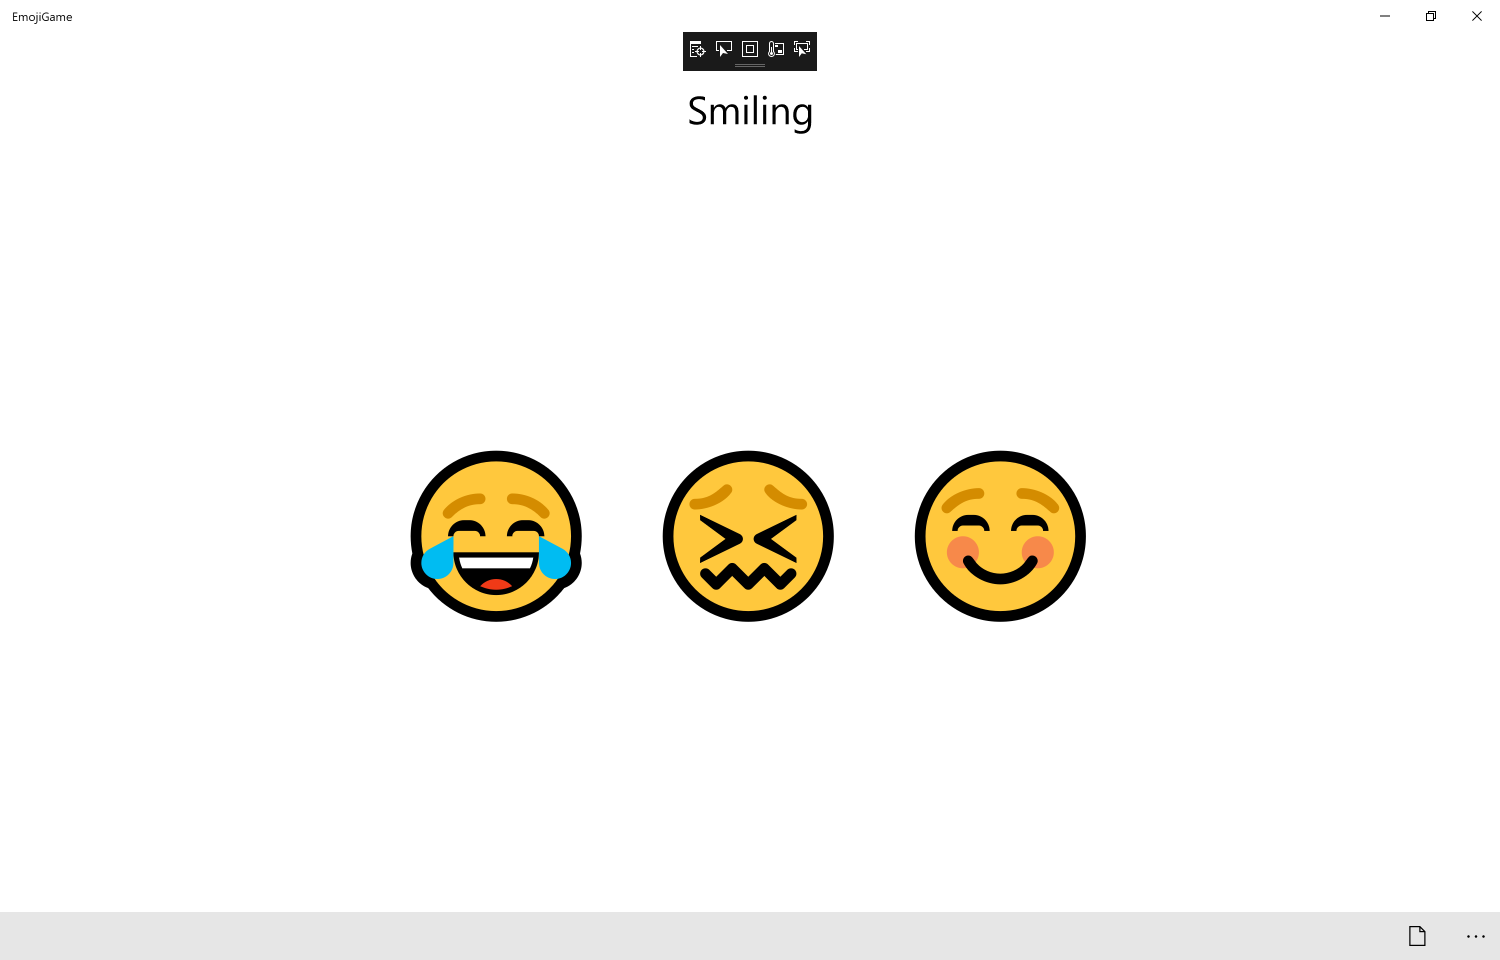 uwp-ran-emoji-game